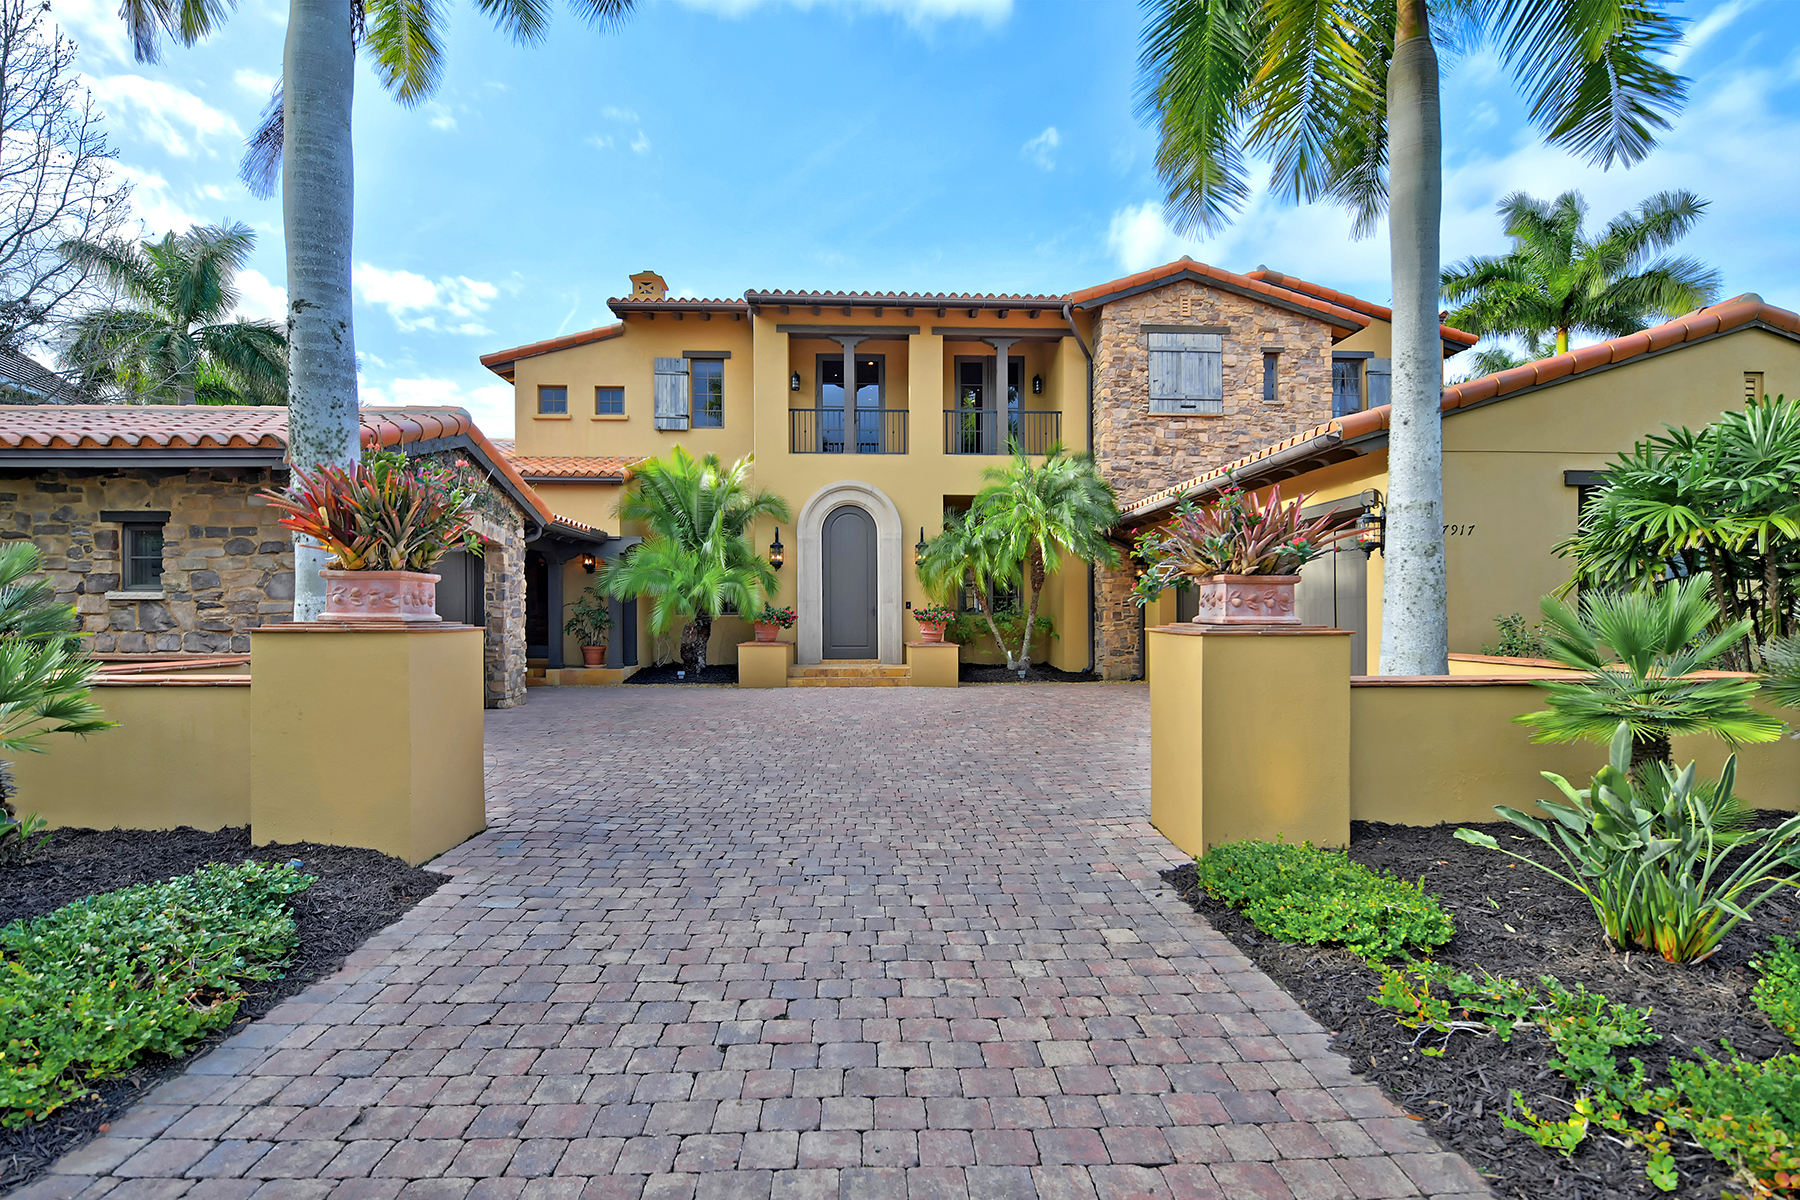 Single Family Homes for Sale at THE LAKE CLUB 7917 Waterton Ln Lakewood Ranch, Florida 34202 United States